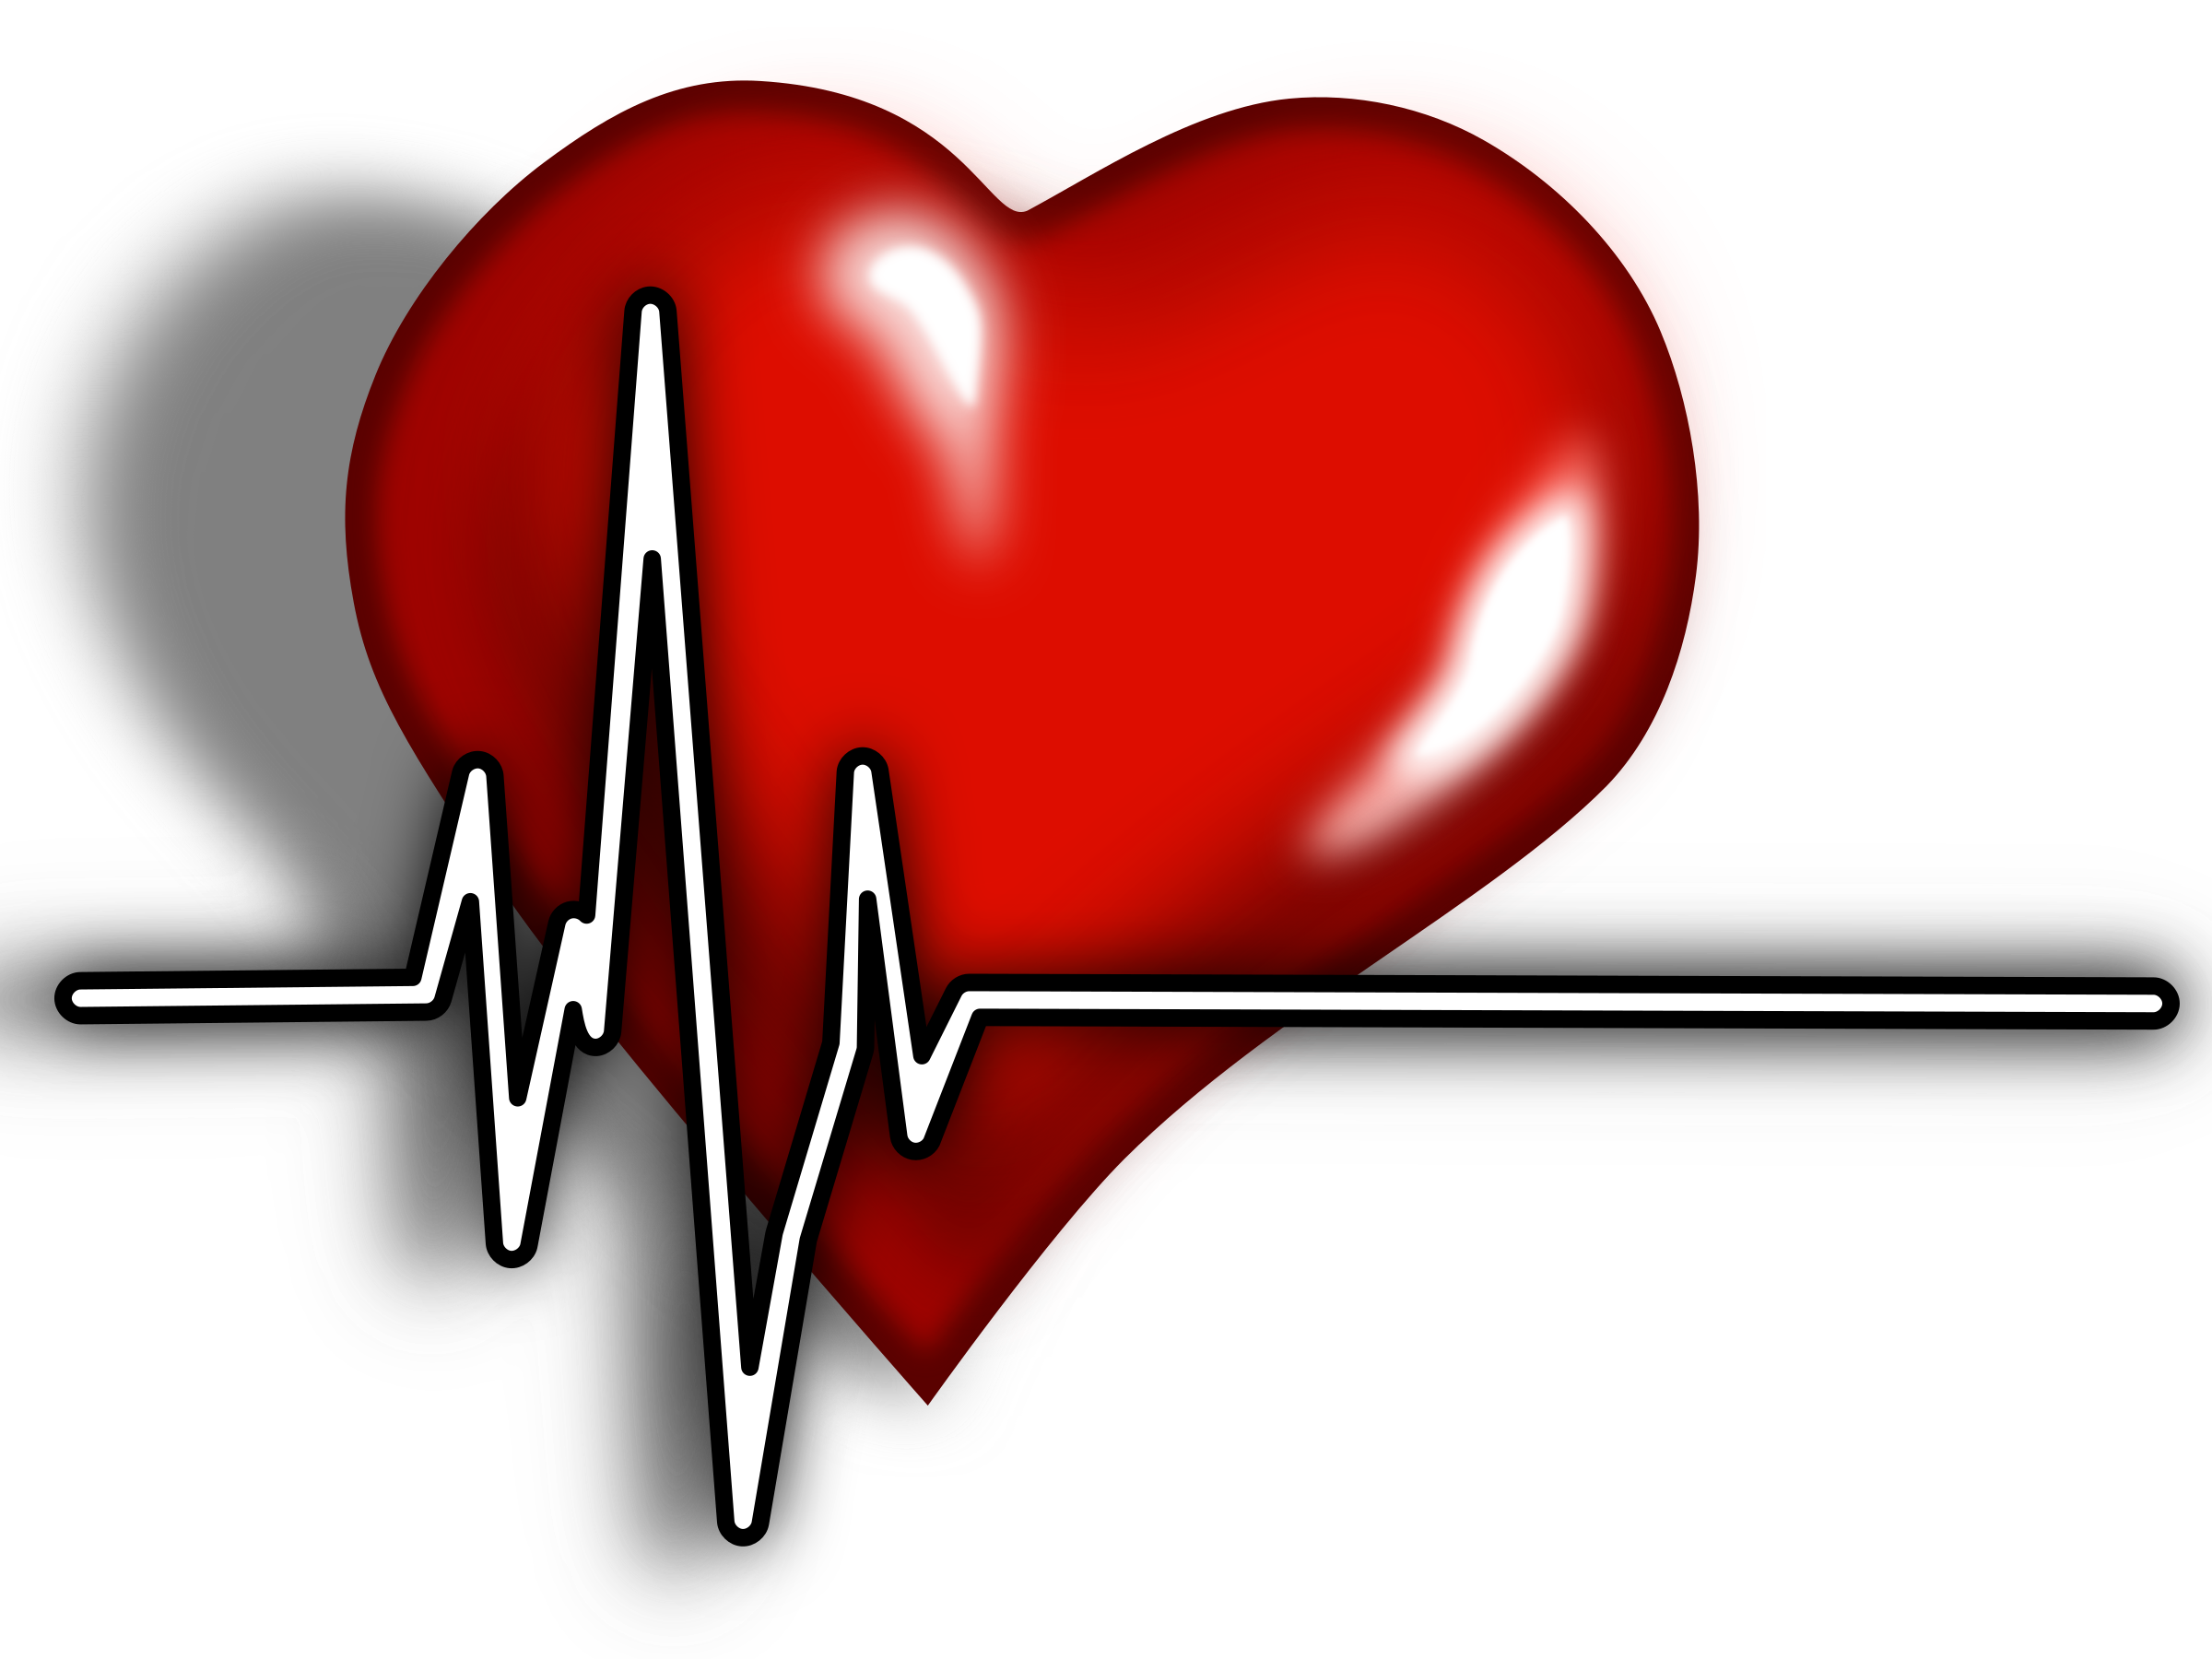 Heart clipart doctor, Heart doctor Transparent FREE for.